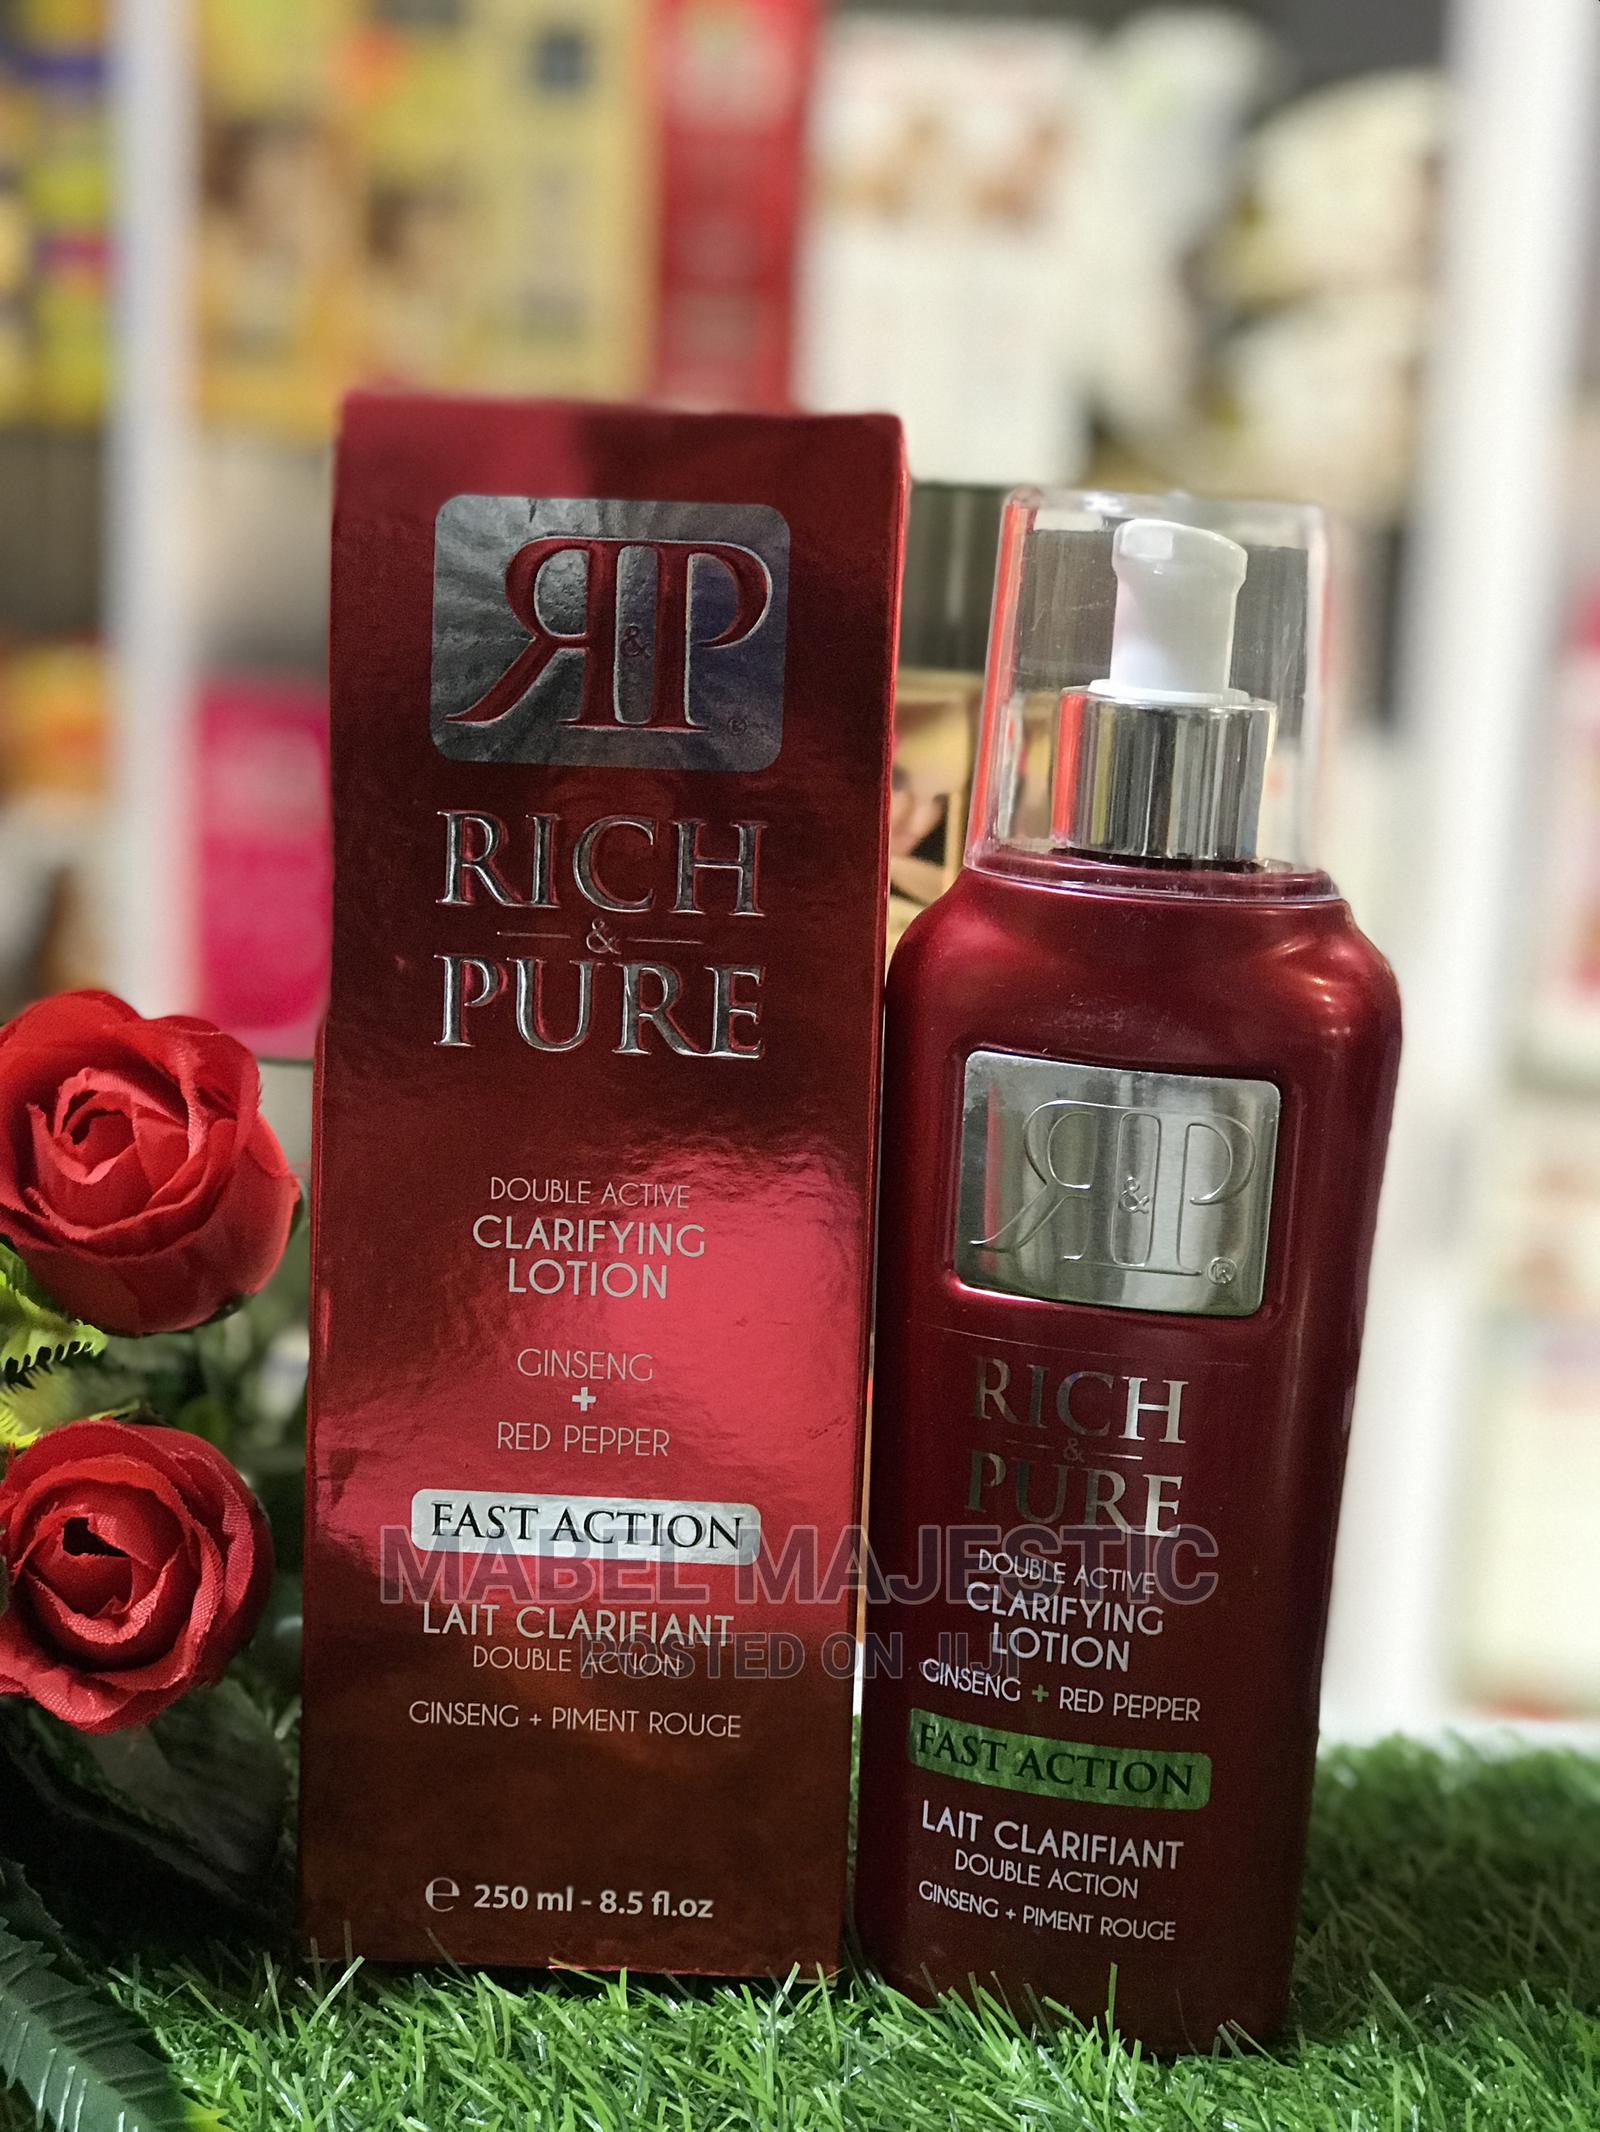 Rich and Pure Double Active Clarifying Body Lotion